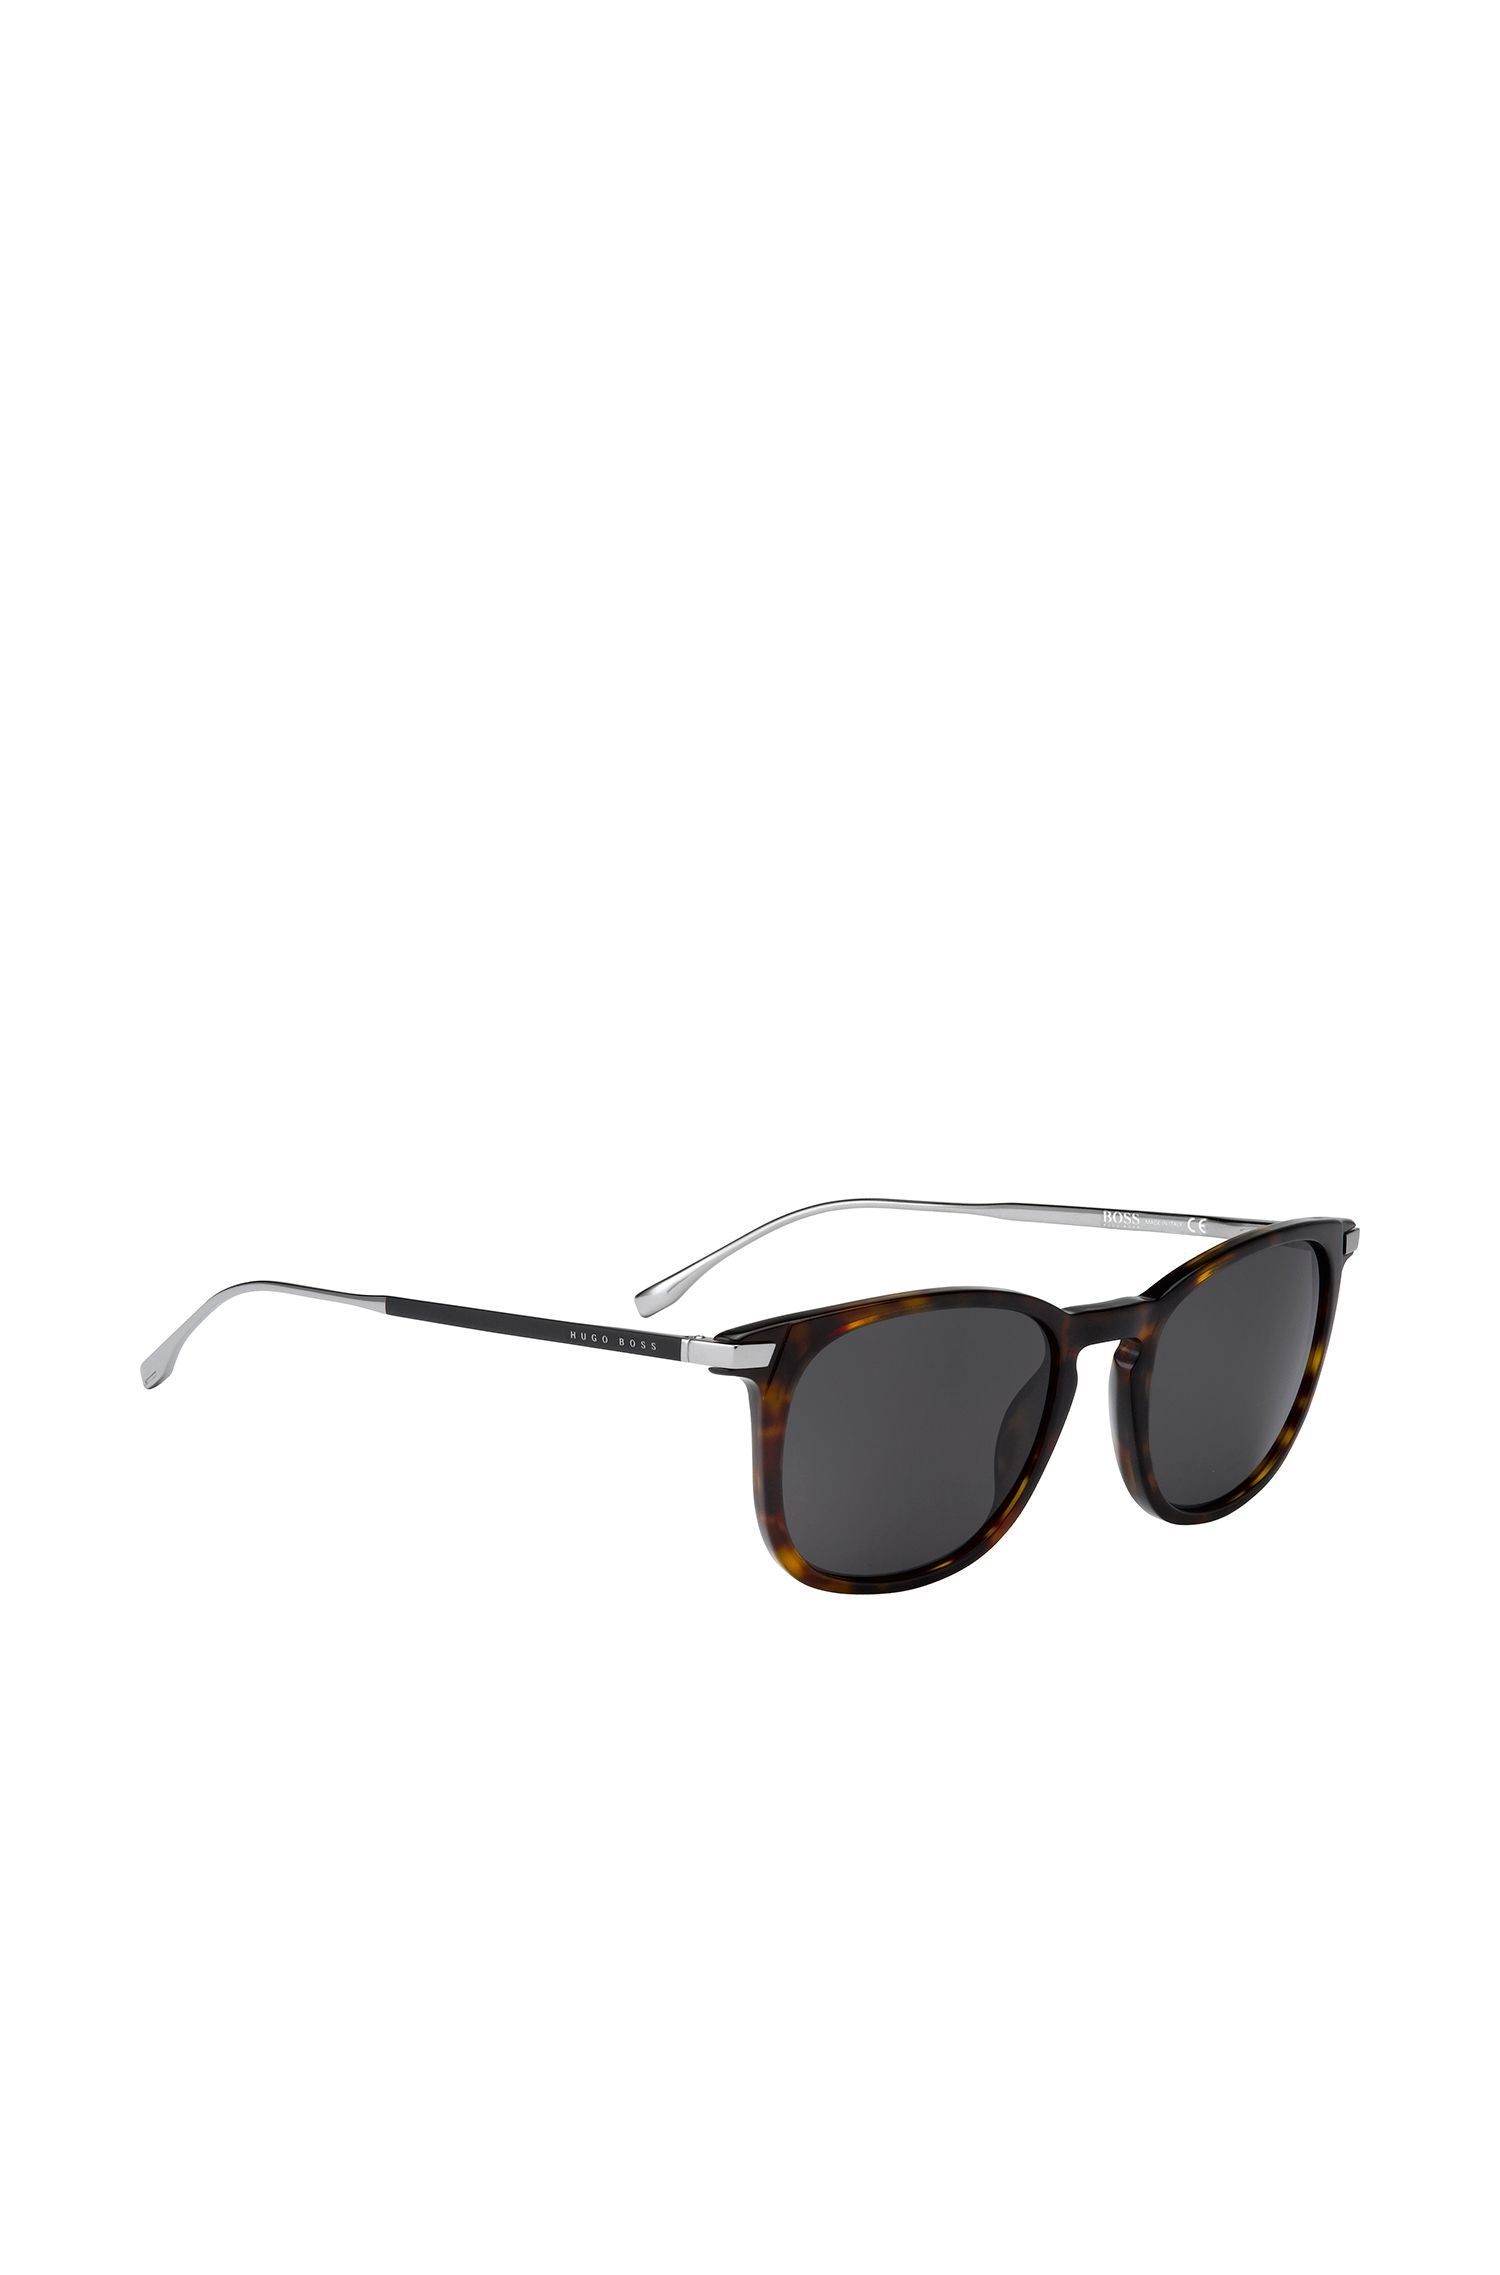 Black sunglasses with distinctive, angular fully rimmed frames: 'BOSS 0783/S', Assorted-Pre-Pack